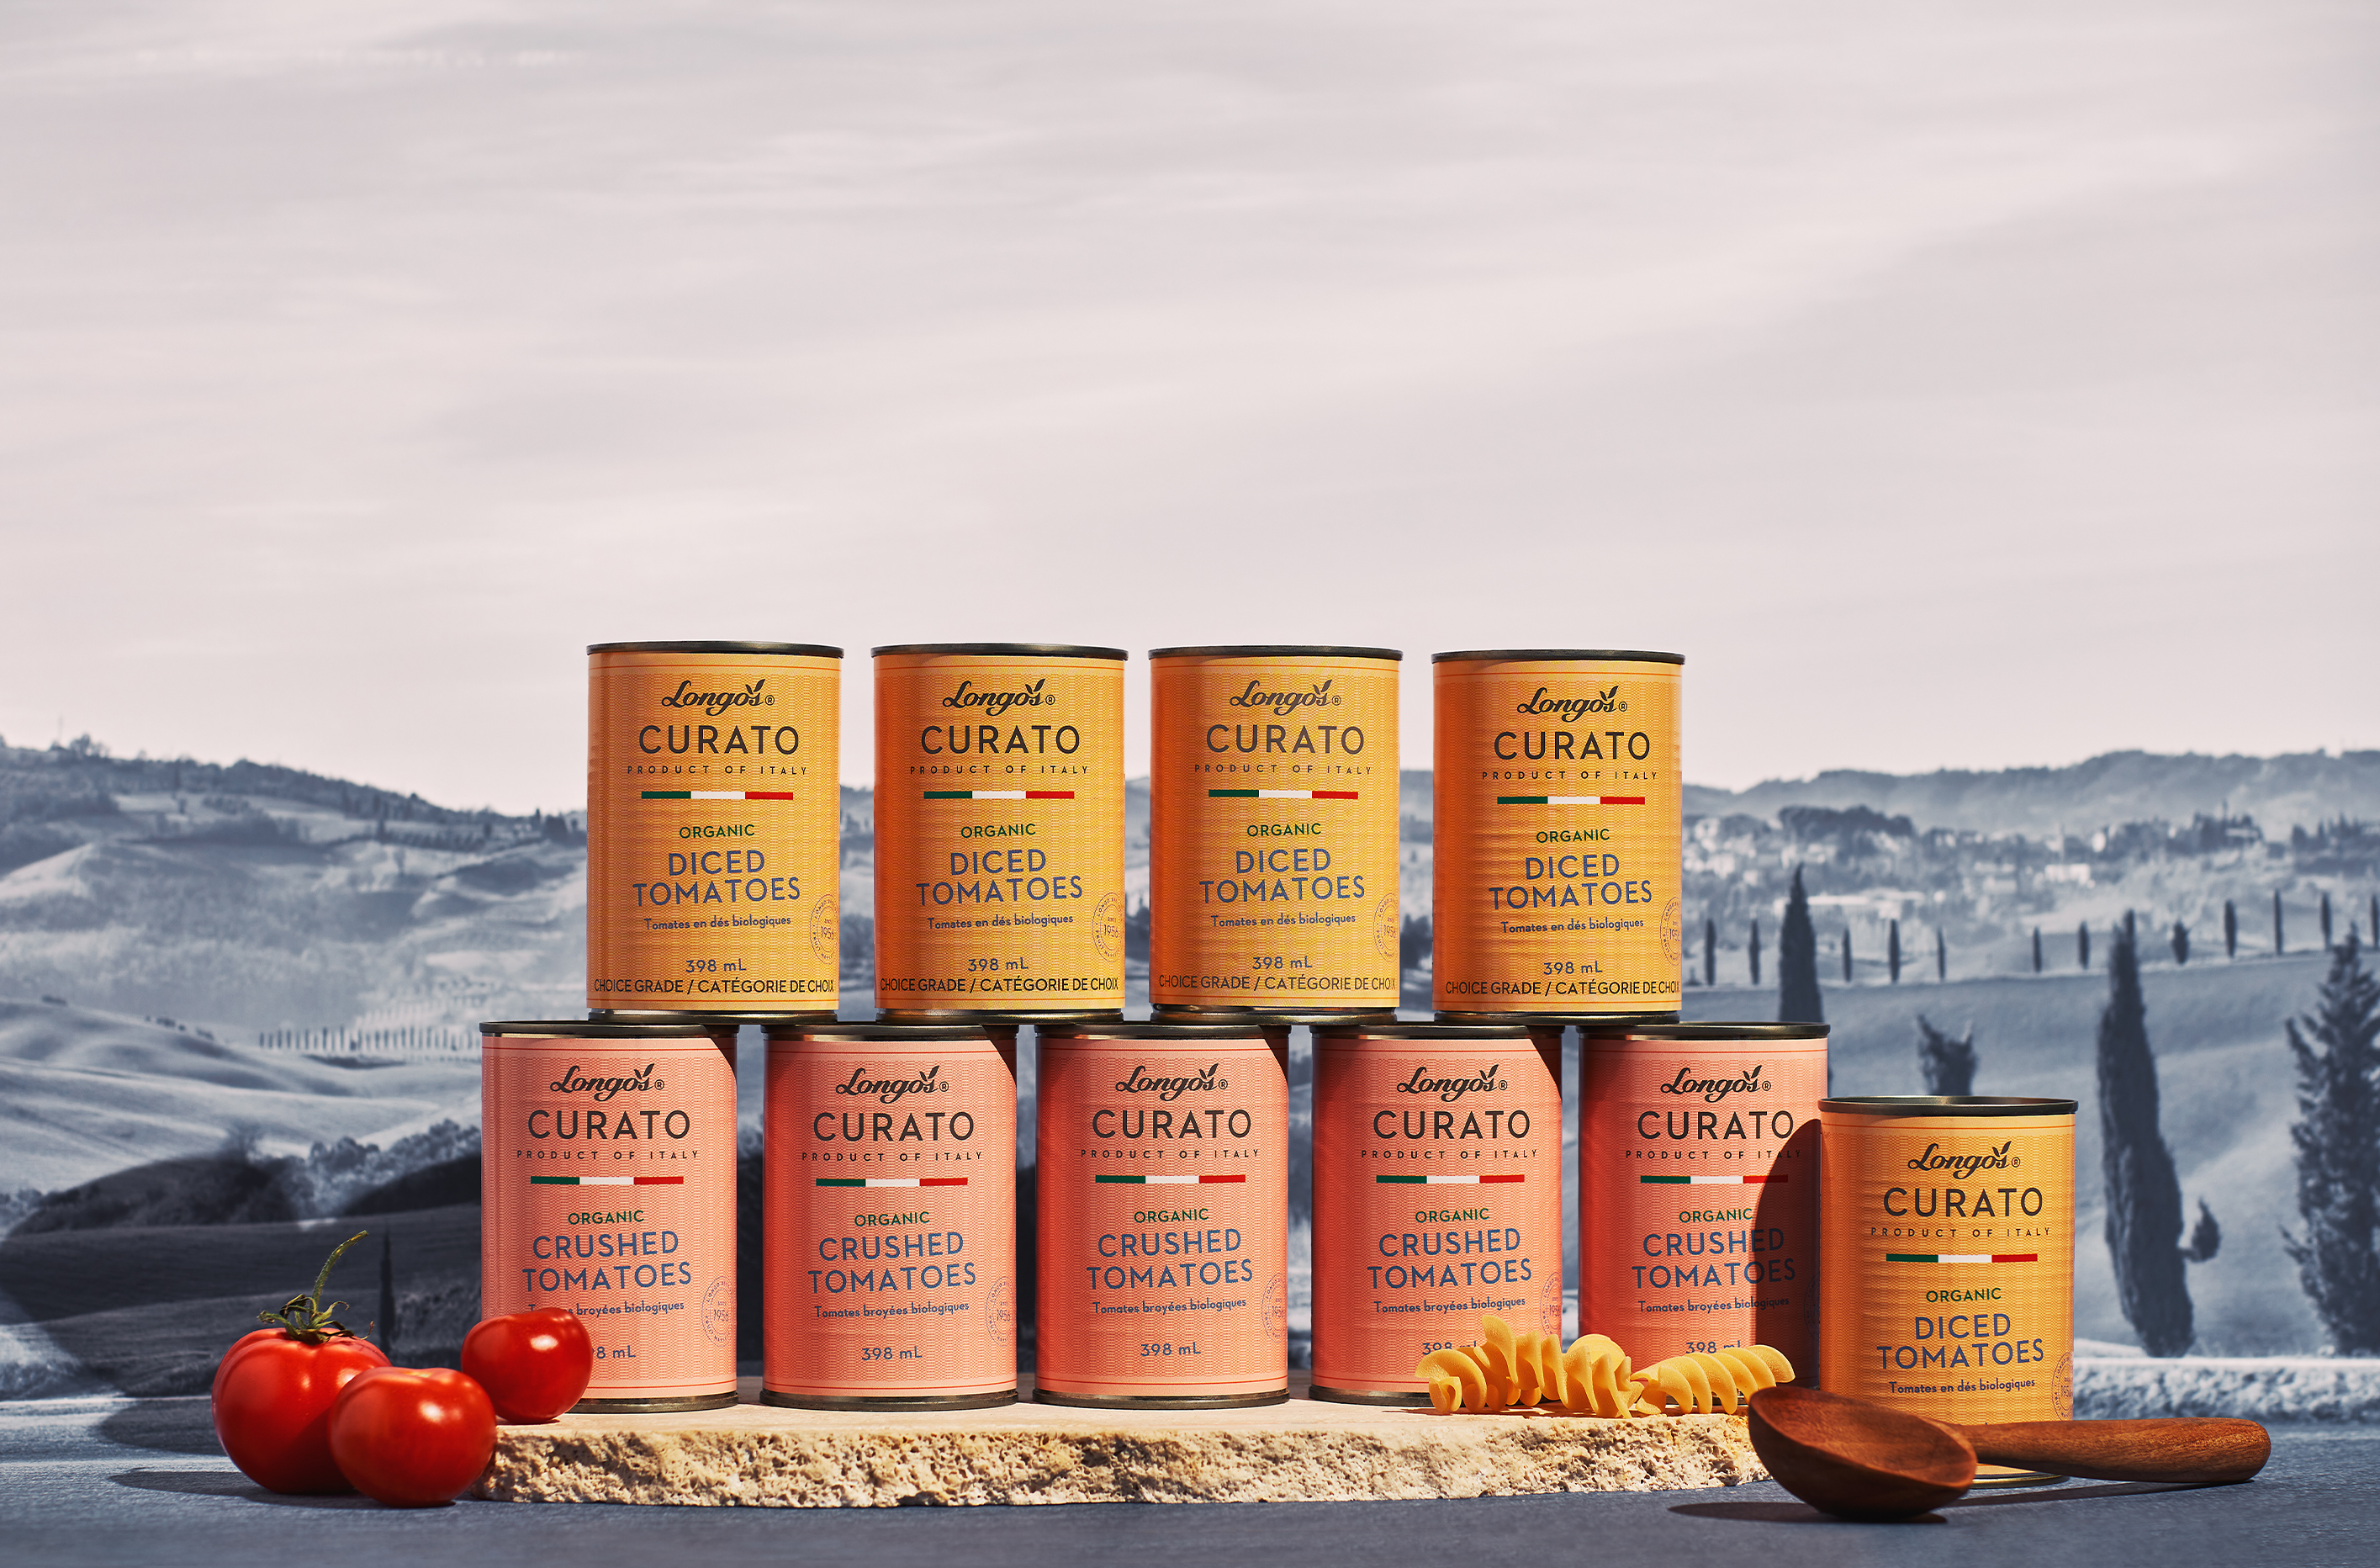 Longo's Curato canned Tomatoes